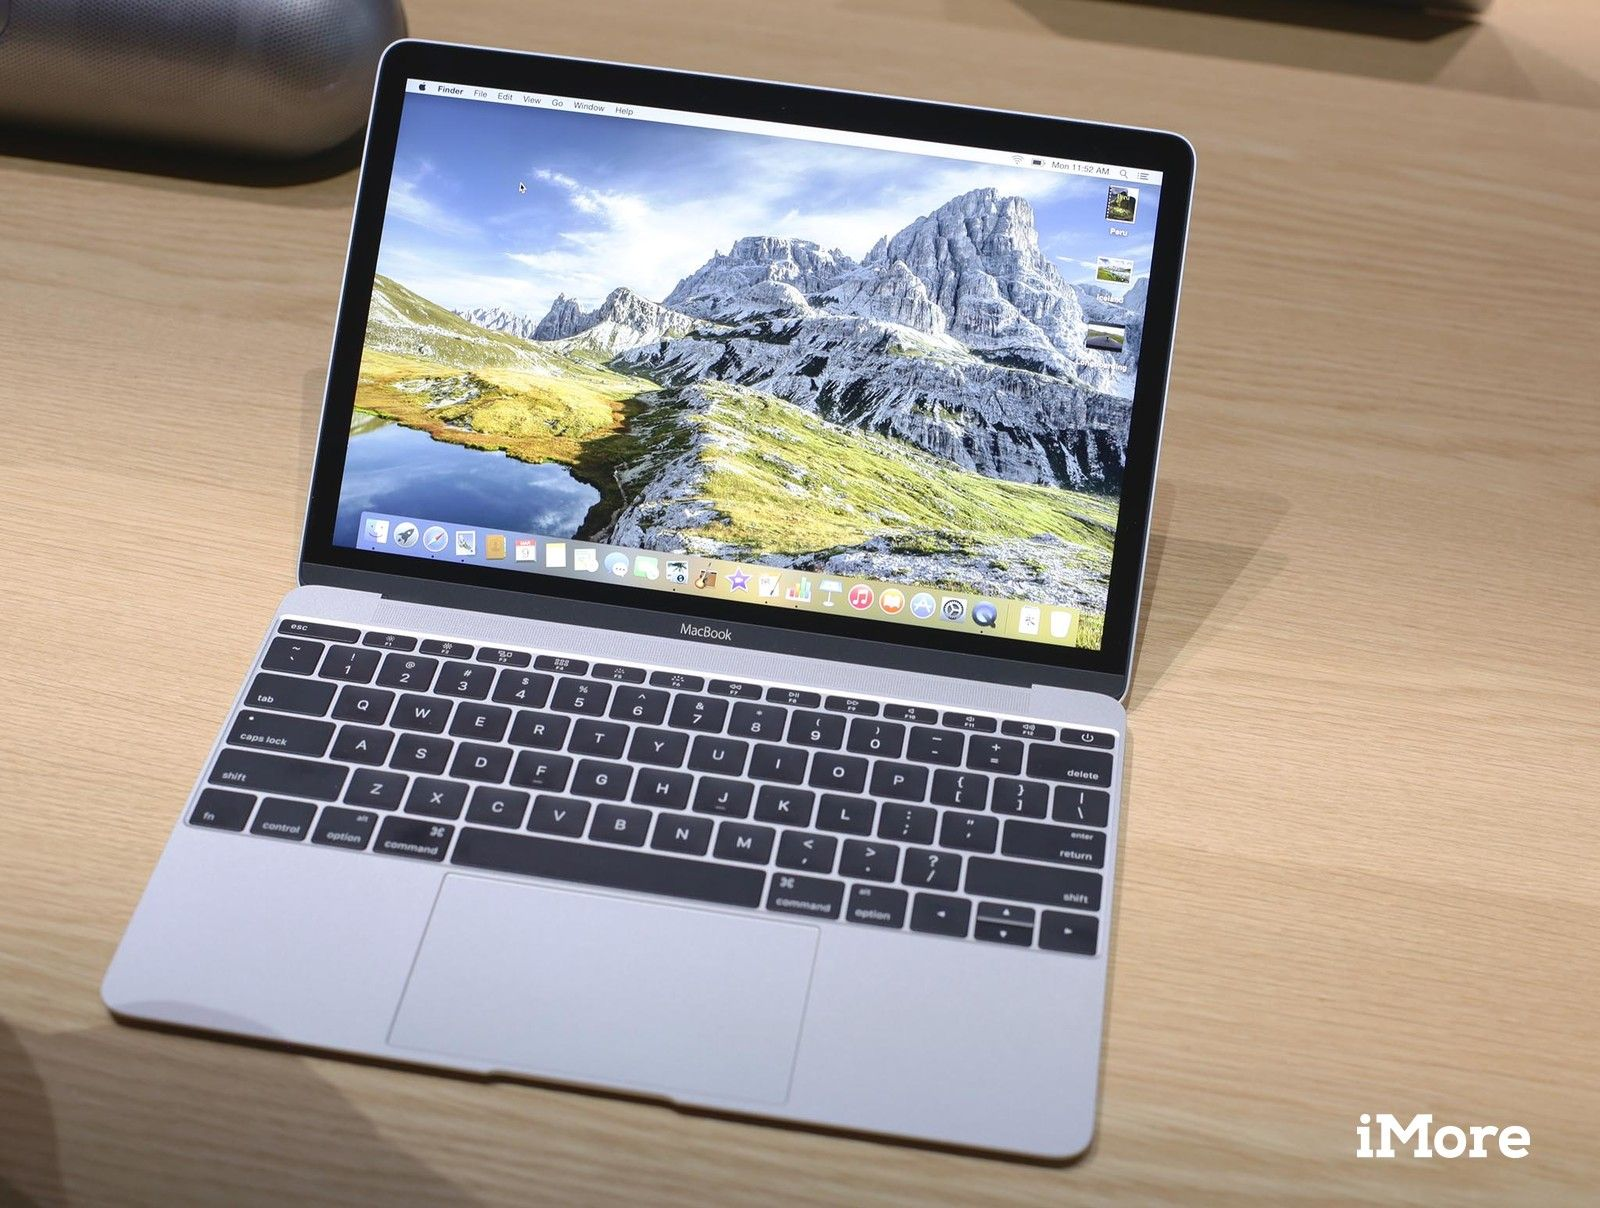 яблоко's new MacBook: How does its Retina display compare to other Macs?